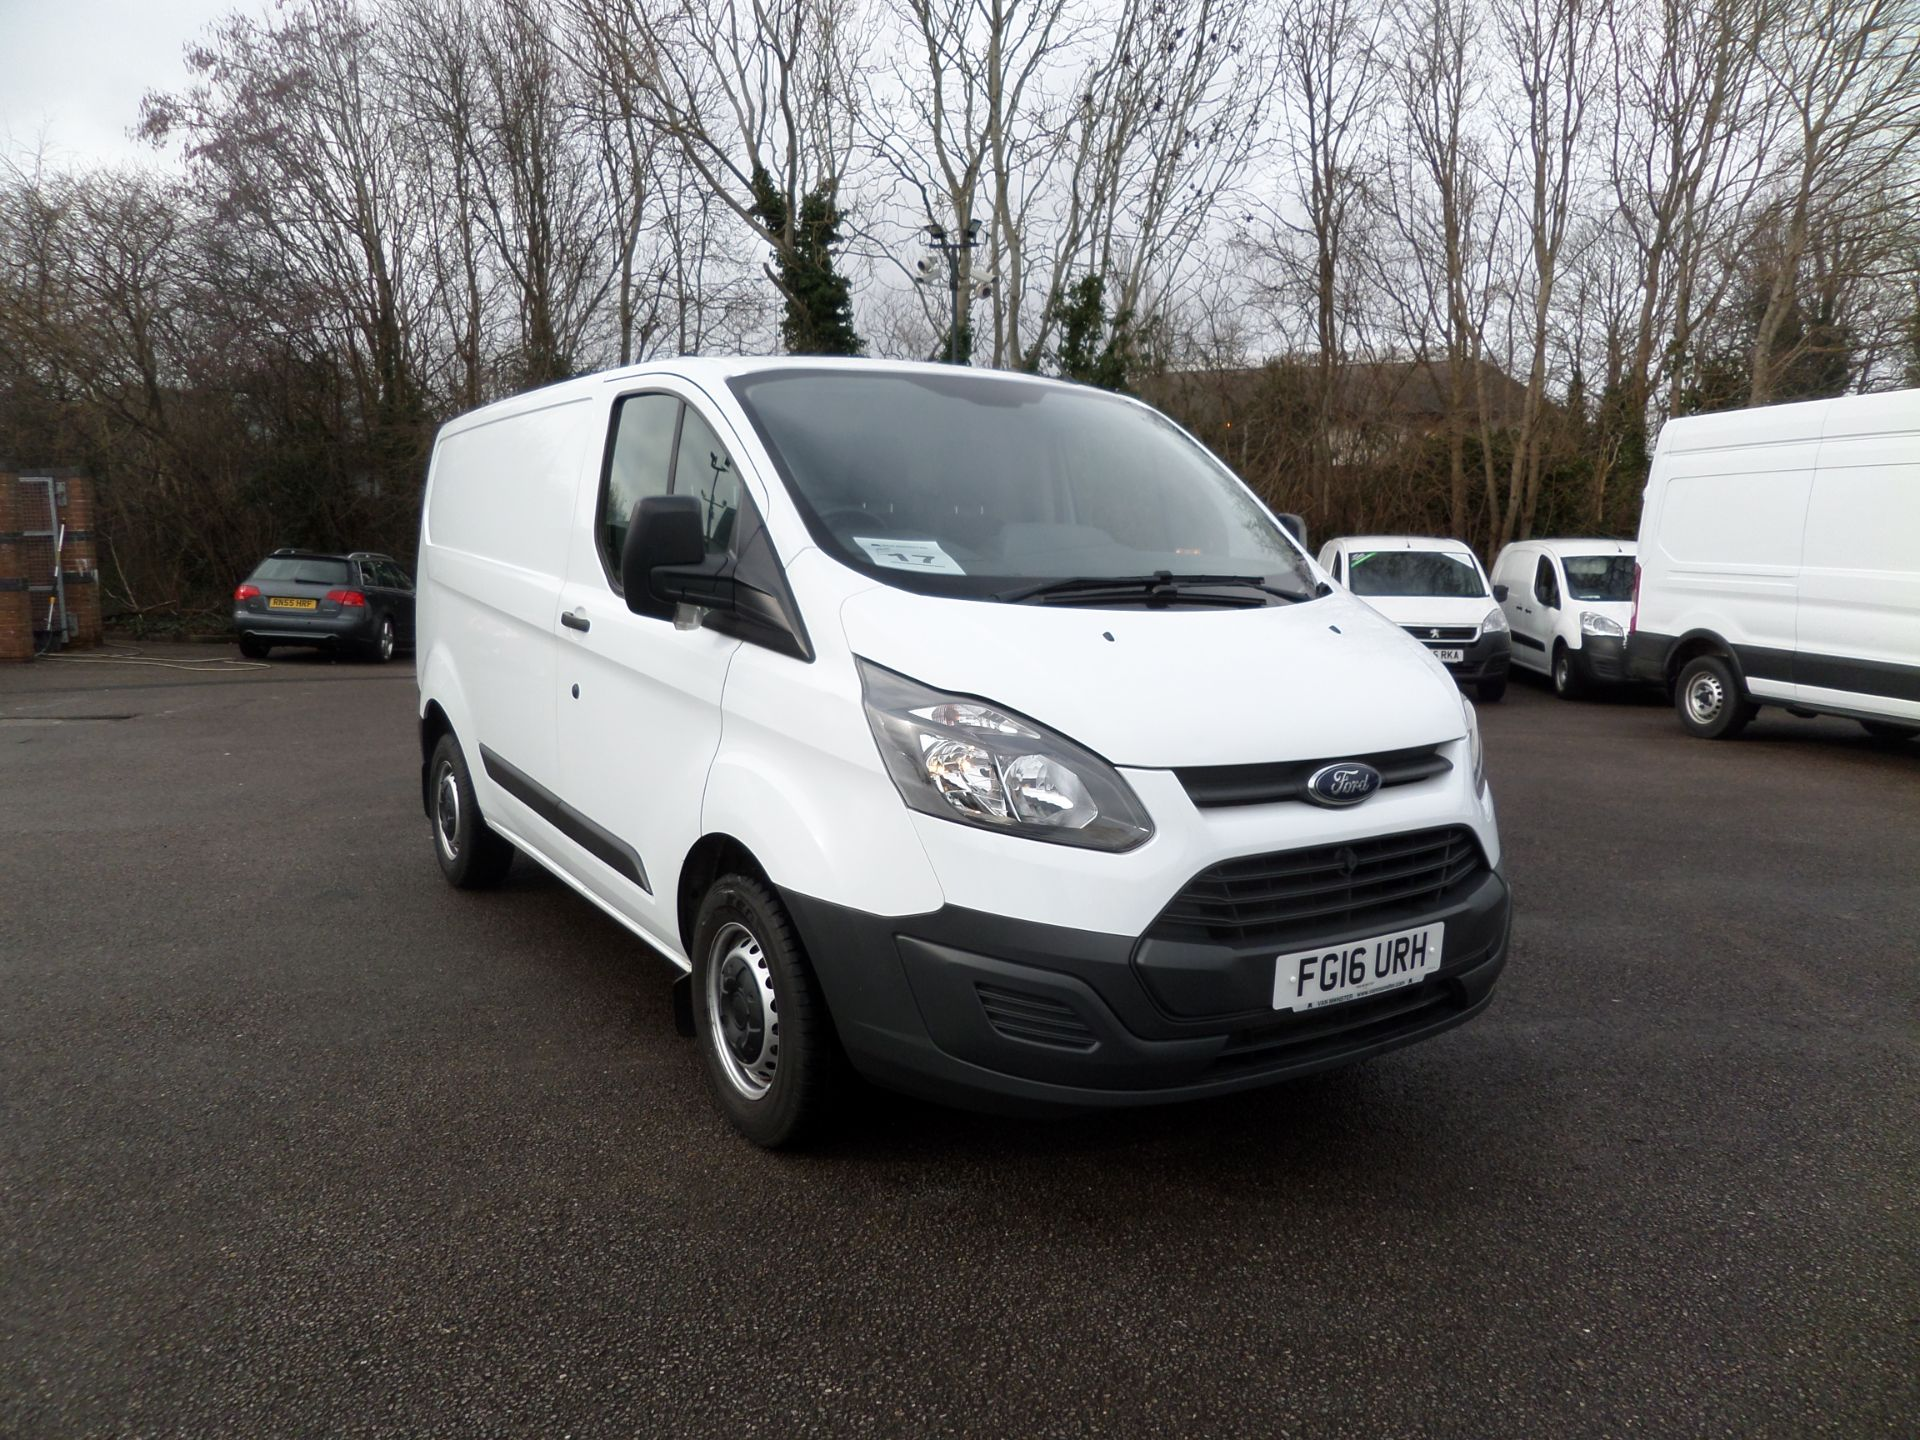 2016 Ford Transit Custom 2.2 Tdci 100Ps Low Roof Van Euro 5 (FG16URH)